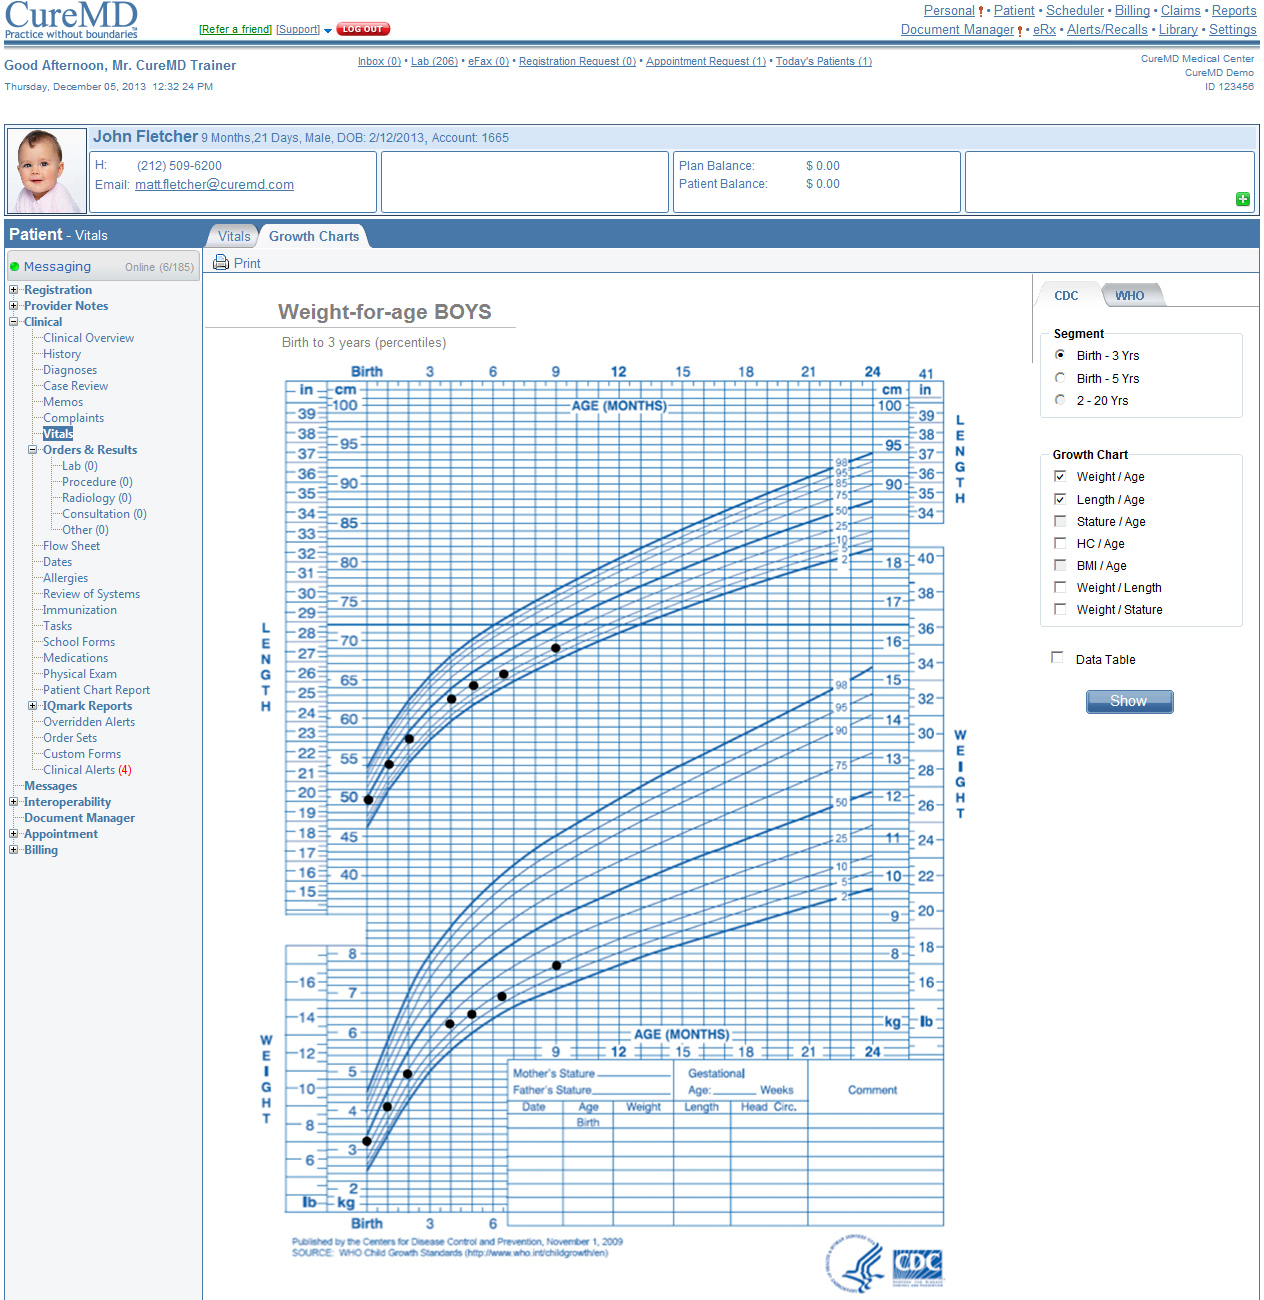 Pediatric ehr software pediatric practice management for physicians options for both cdc and who chart templates are available out of the box clinical calculators eg for bmibsa enable the system to plot all charts nvjuhfo Choice Image